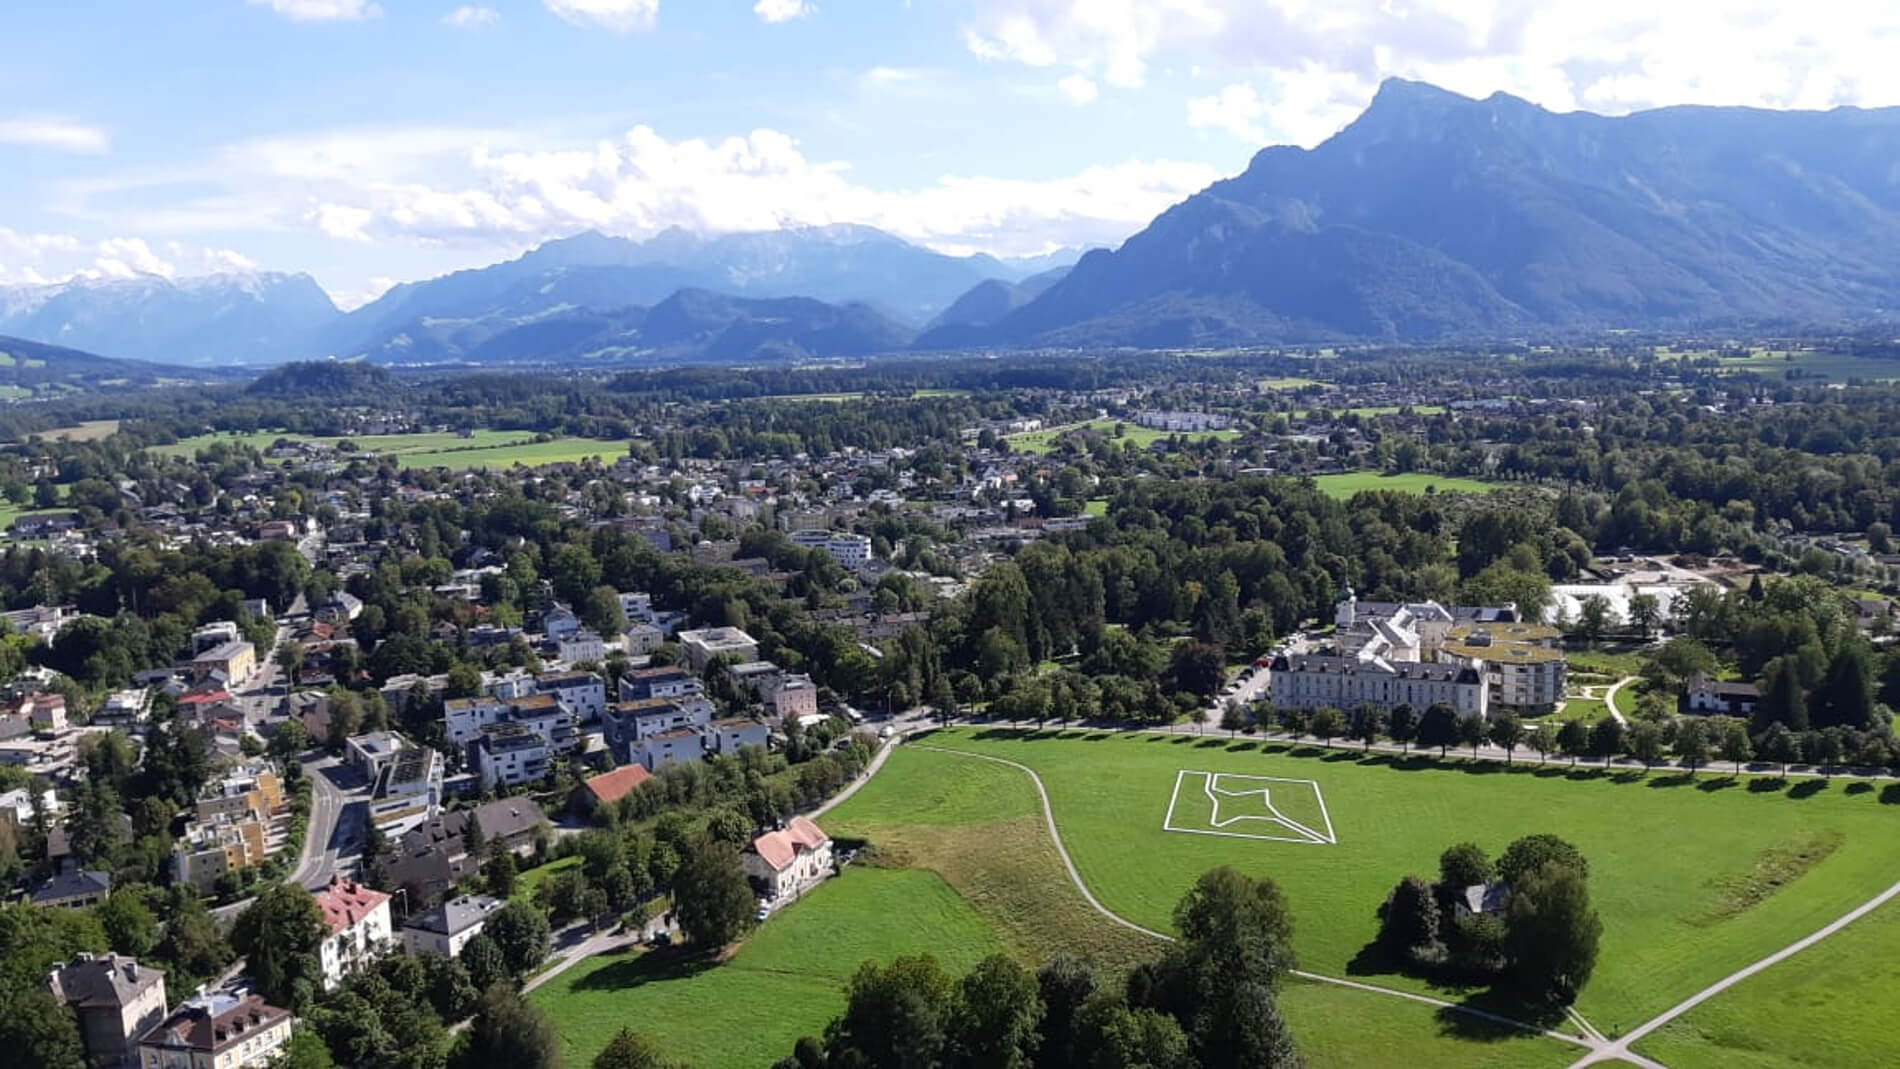 Some of the most astonishing views of Salzburg can be accessed from the windows of the Salzburg Summer Academy, within the Fortress Hohensalzburg | STIRworld